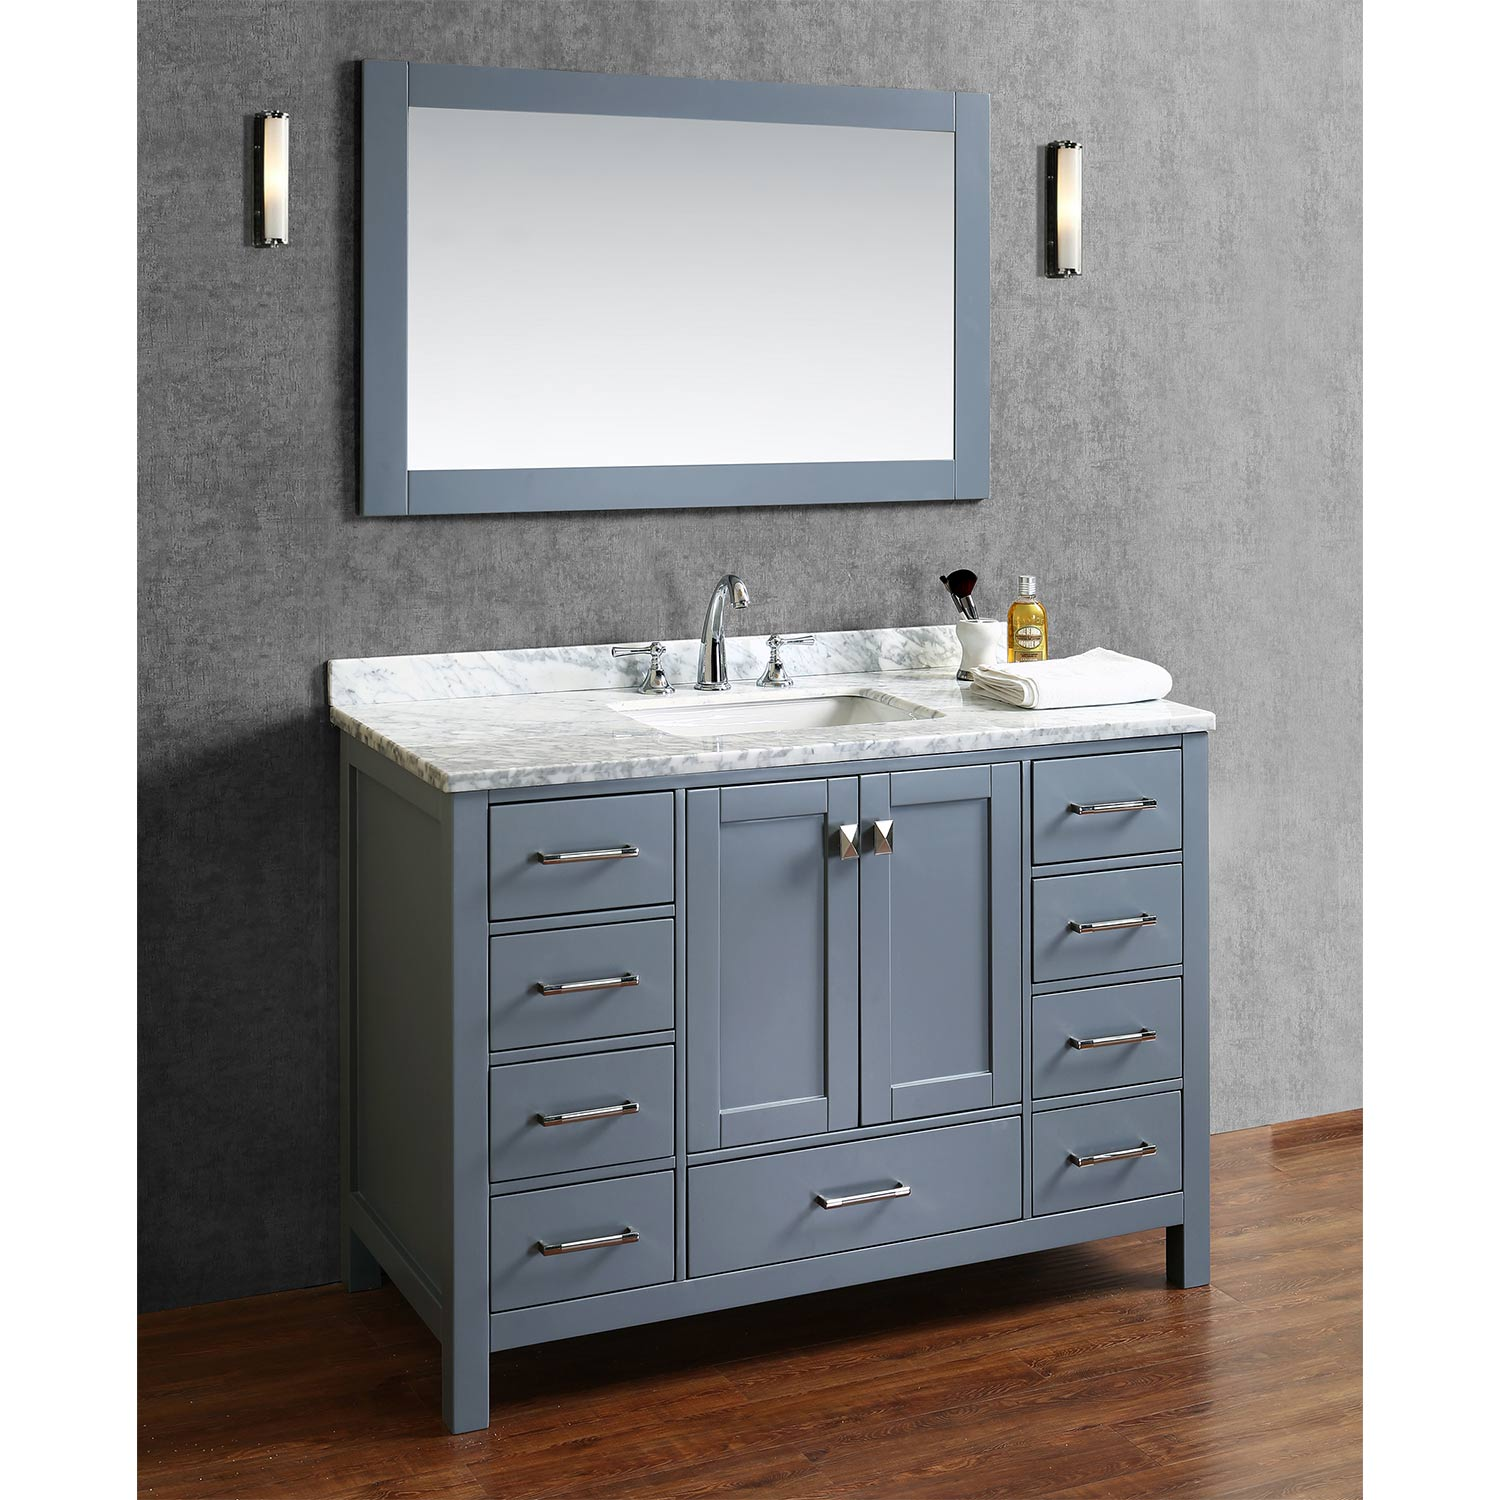 Buy vincent 48 inch solid wood single bathroom vanity in for Bathroom 48 inch vanity